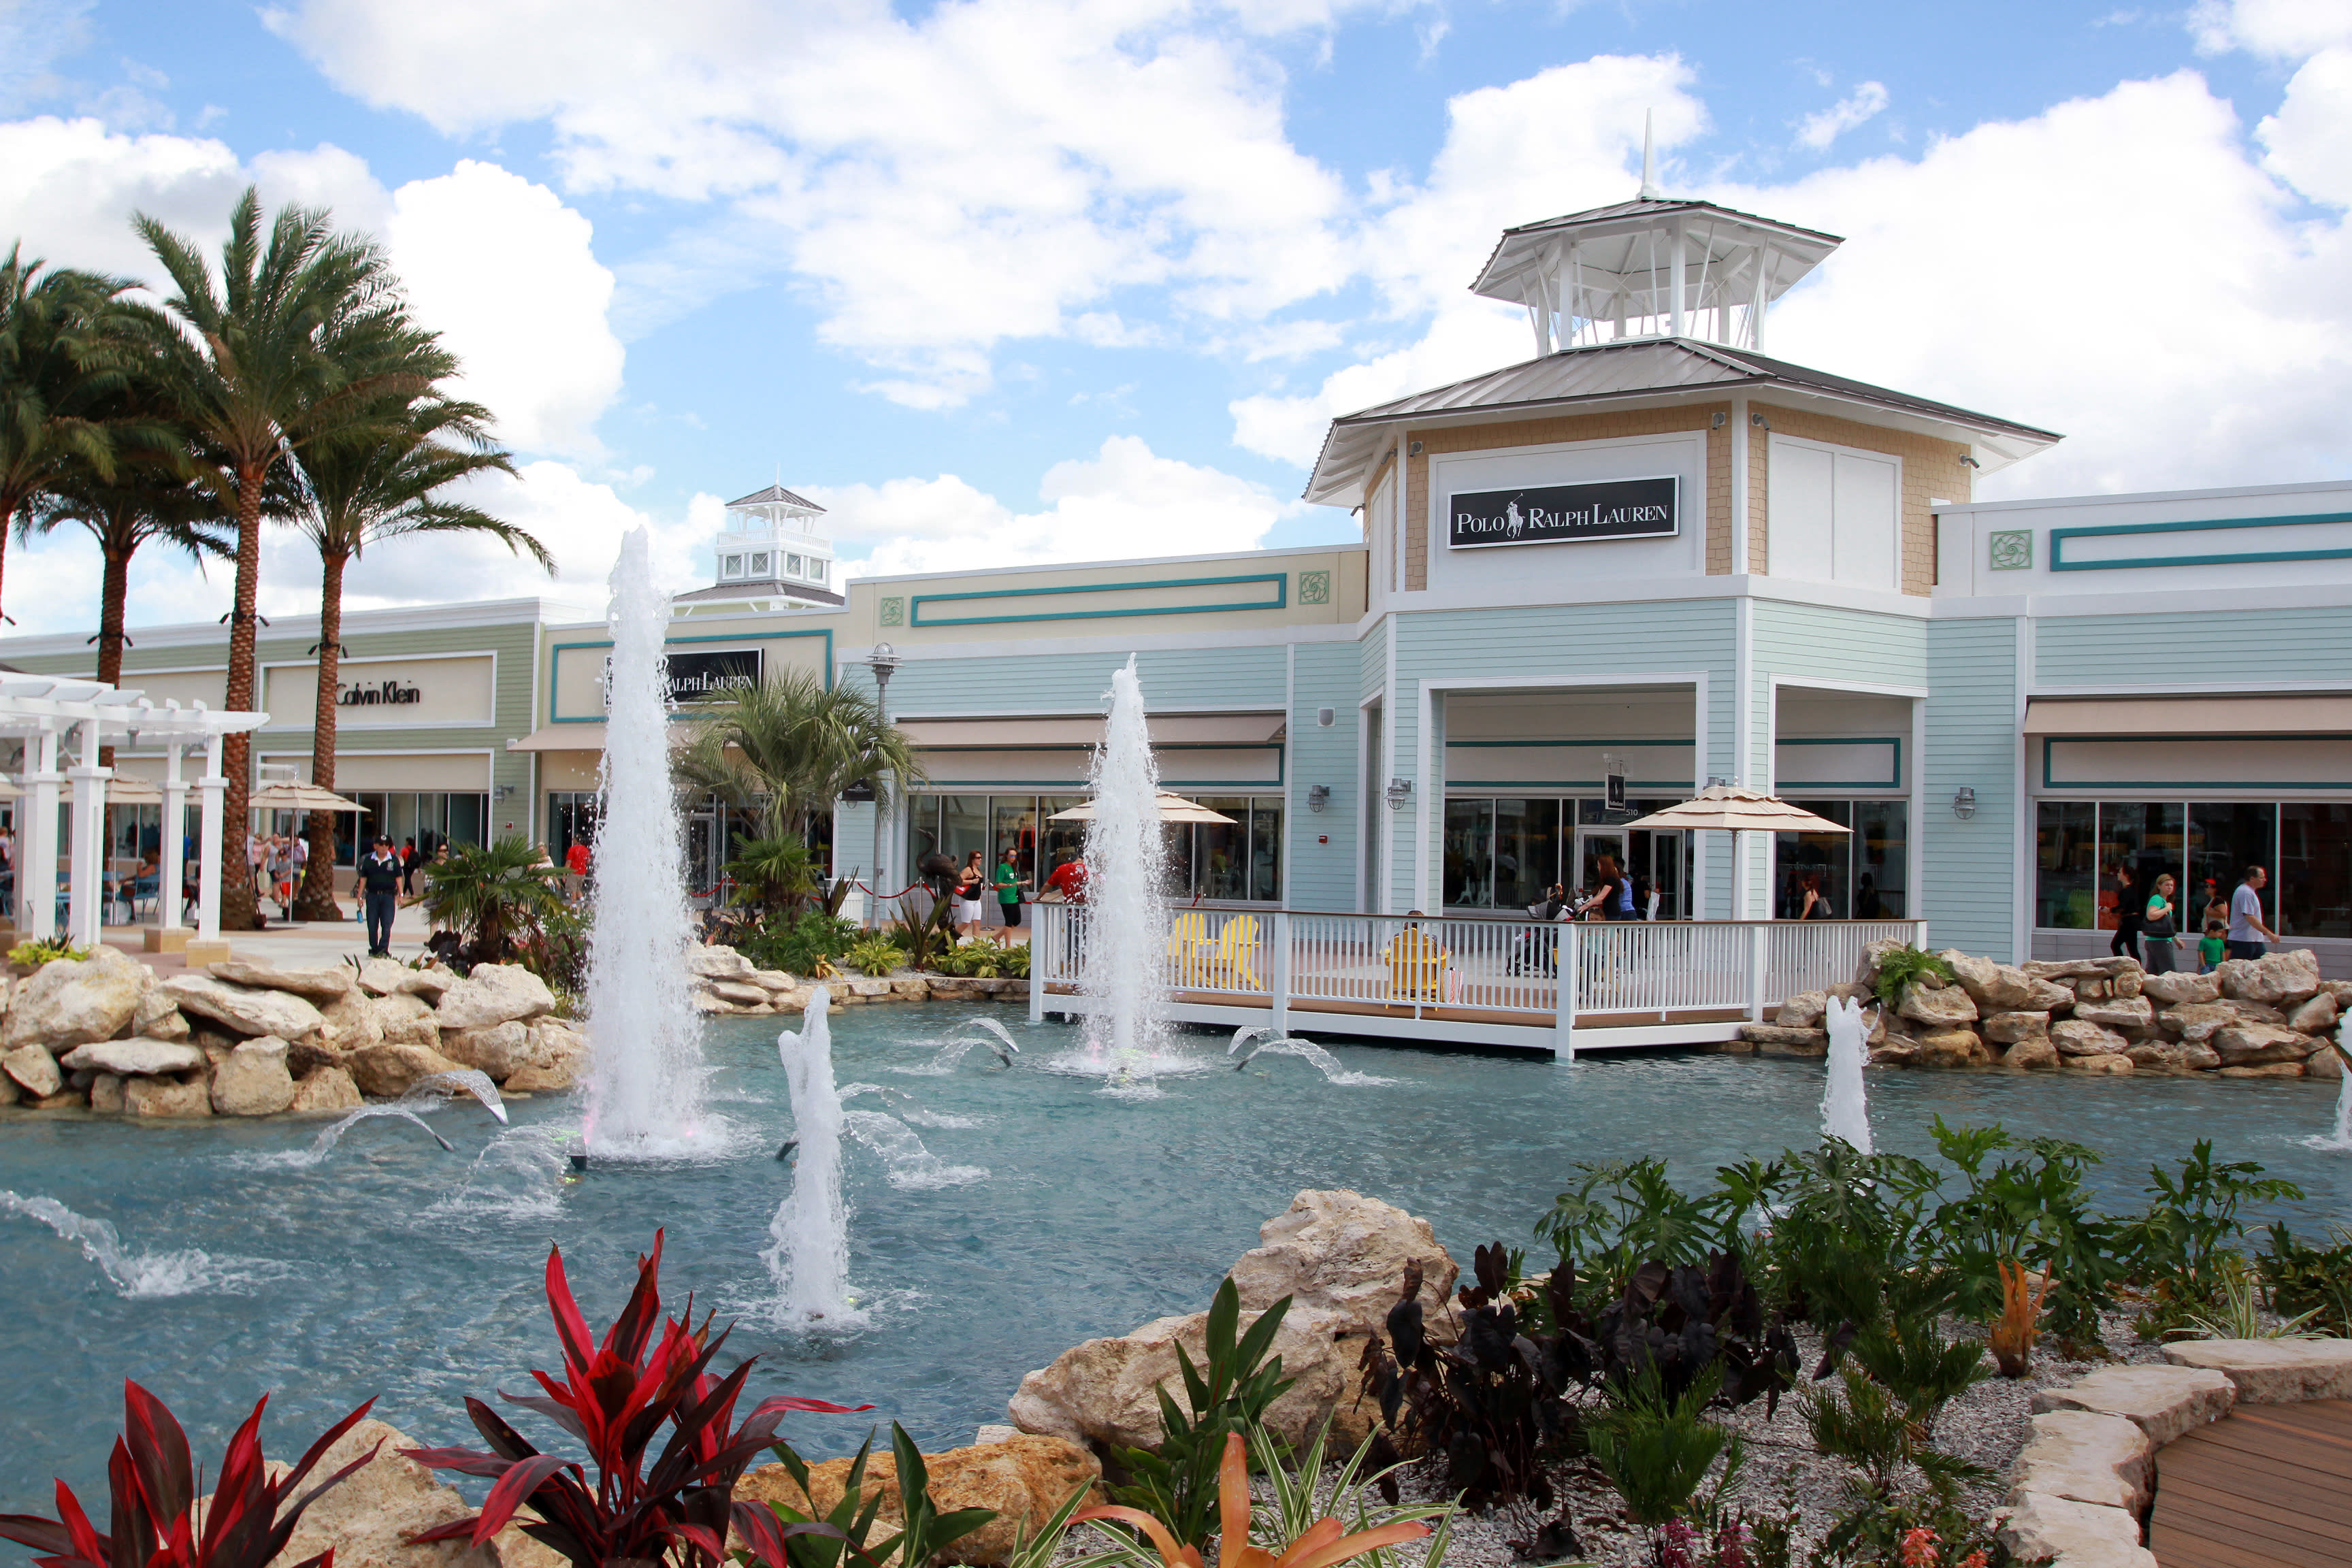 Fountains at Tampa Premium Outlets in Tampa, FL